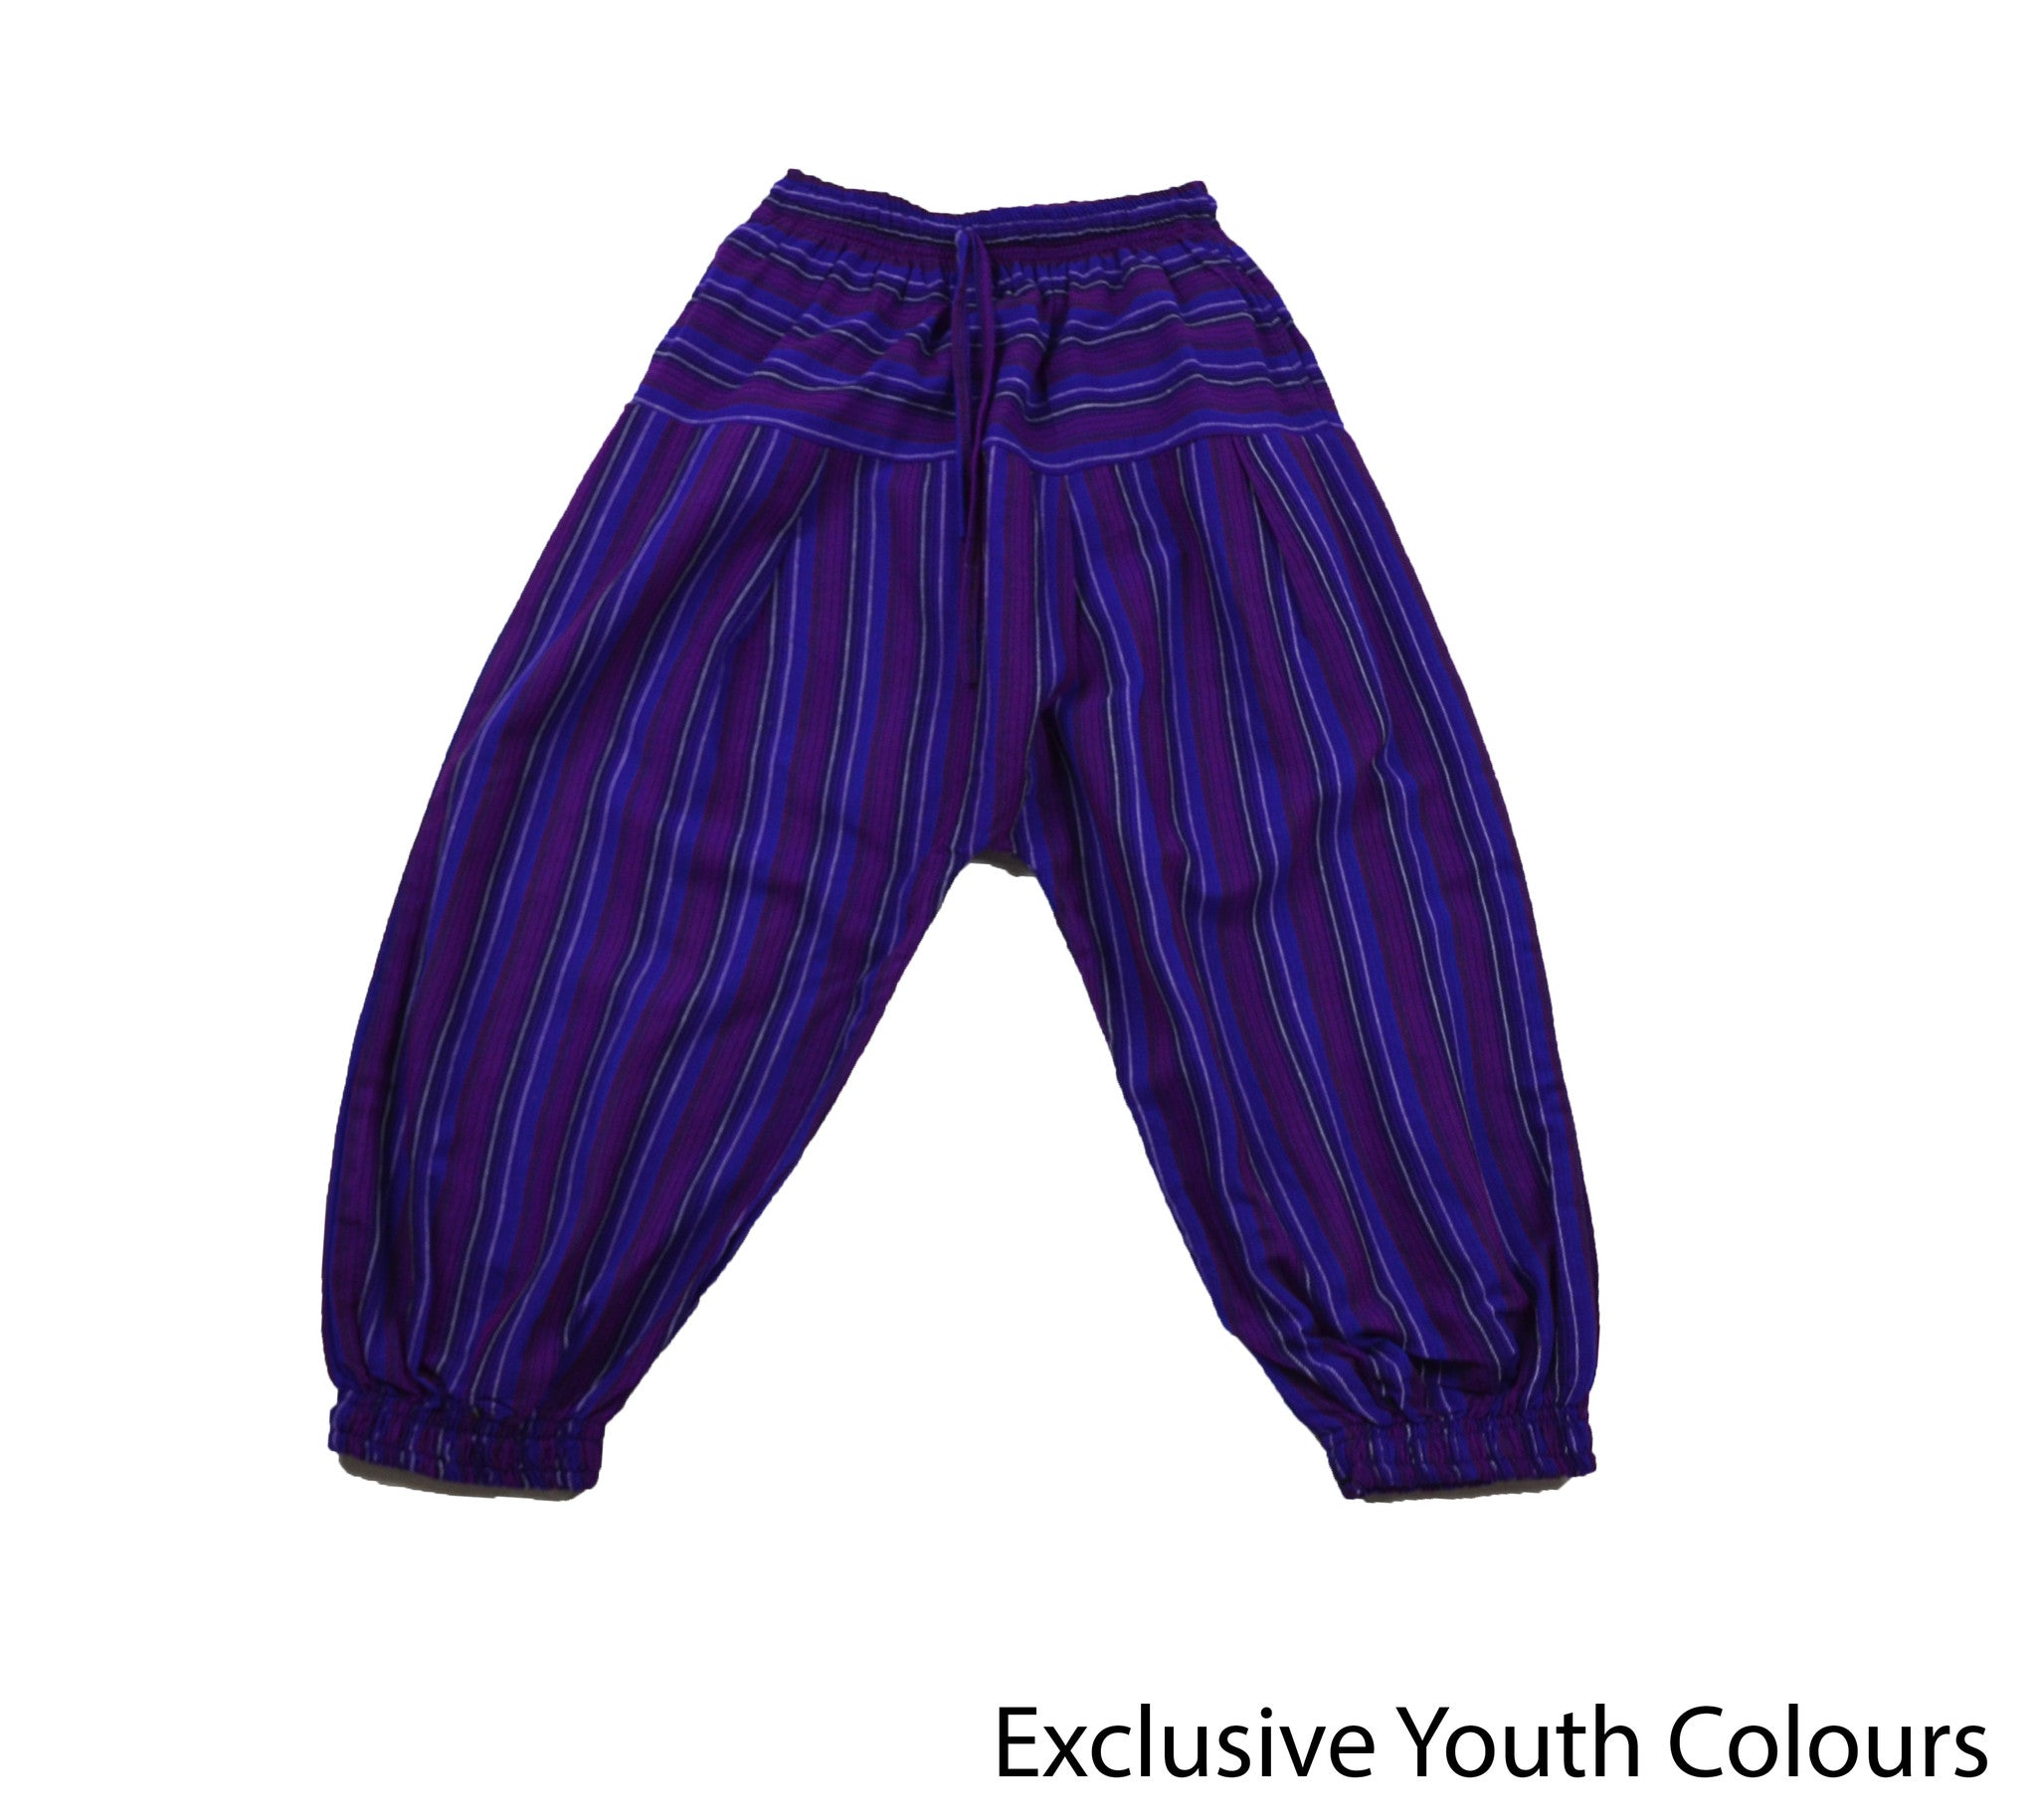 Purple Bohemian Youth Pants - Happy Pants